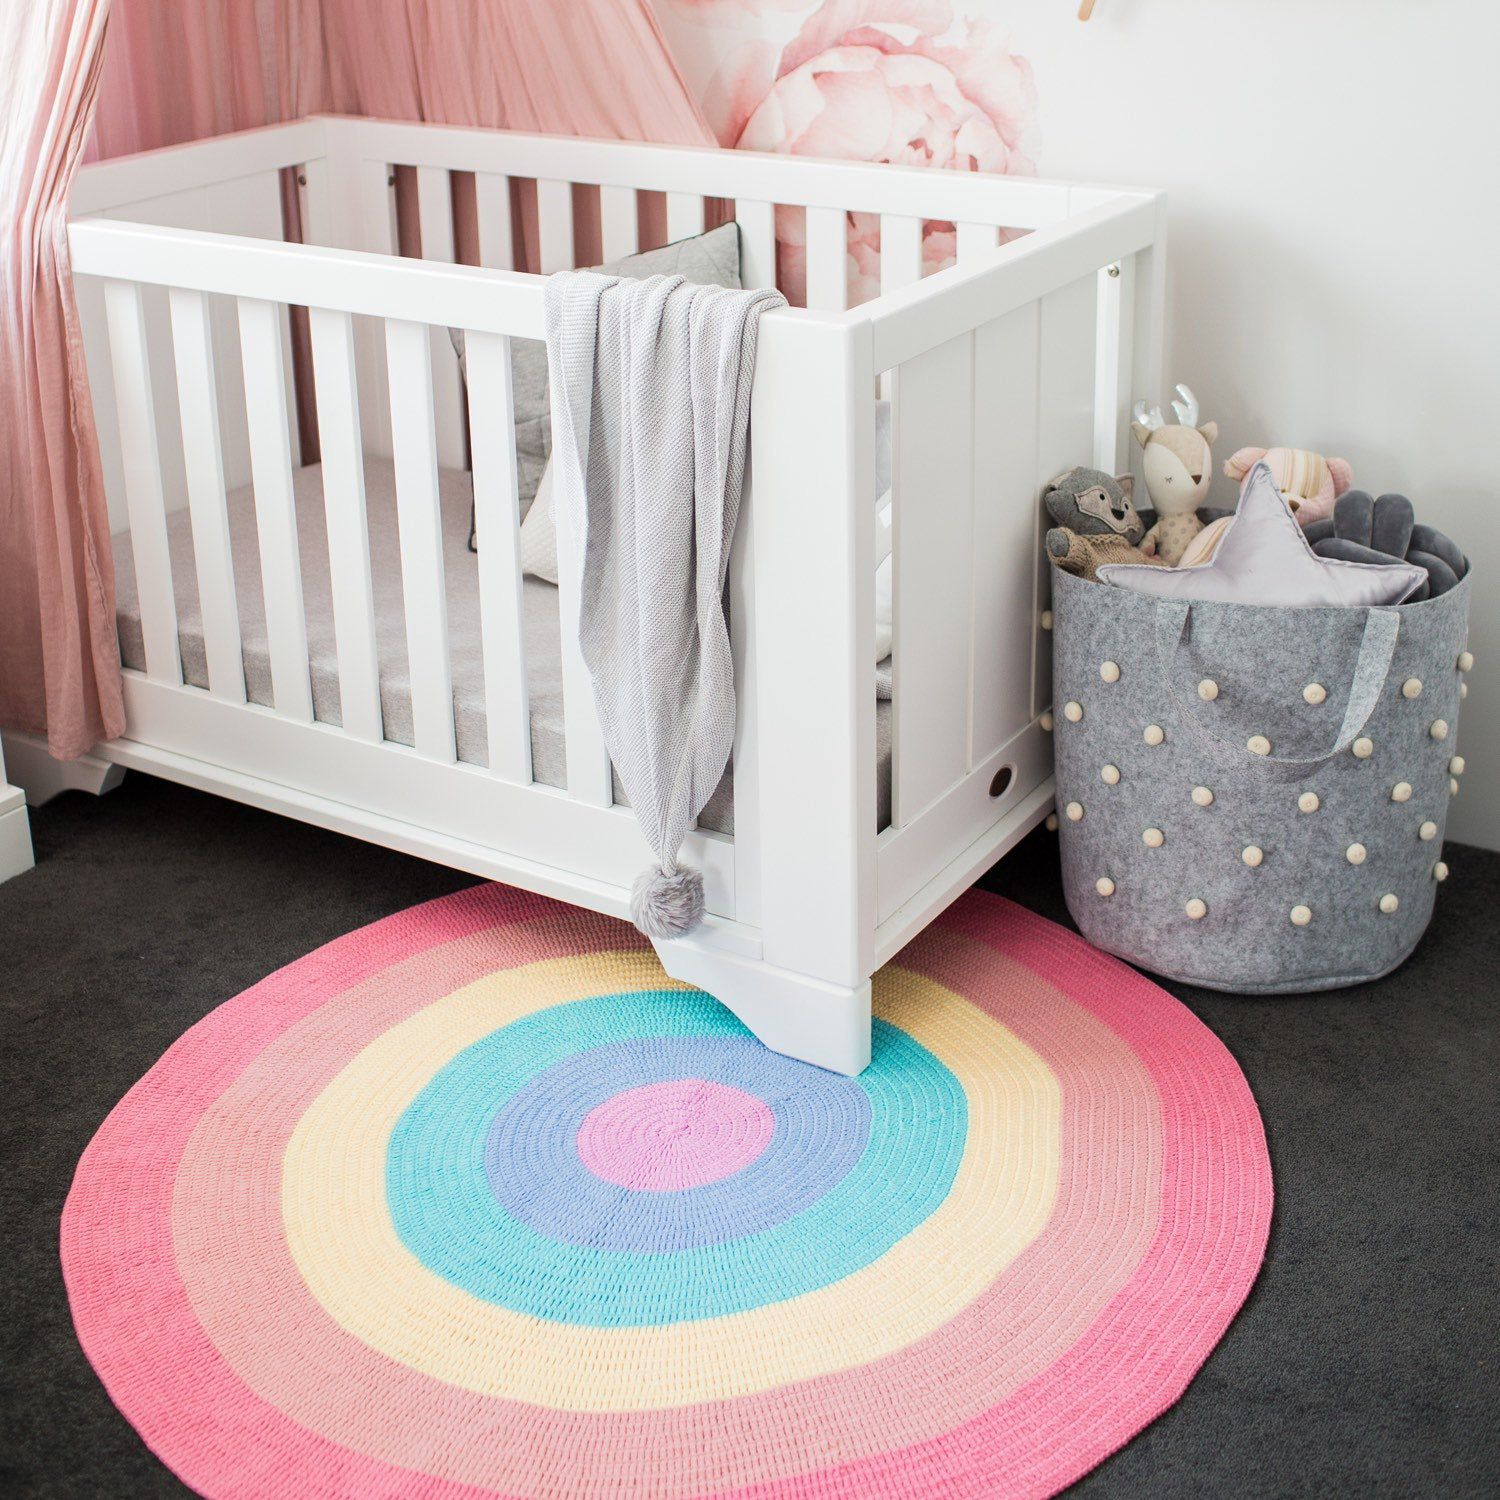 Loveindilou Shared A New Photo On Etsy Soft Nursery Rug Soft Nursery Nursery Rugs